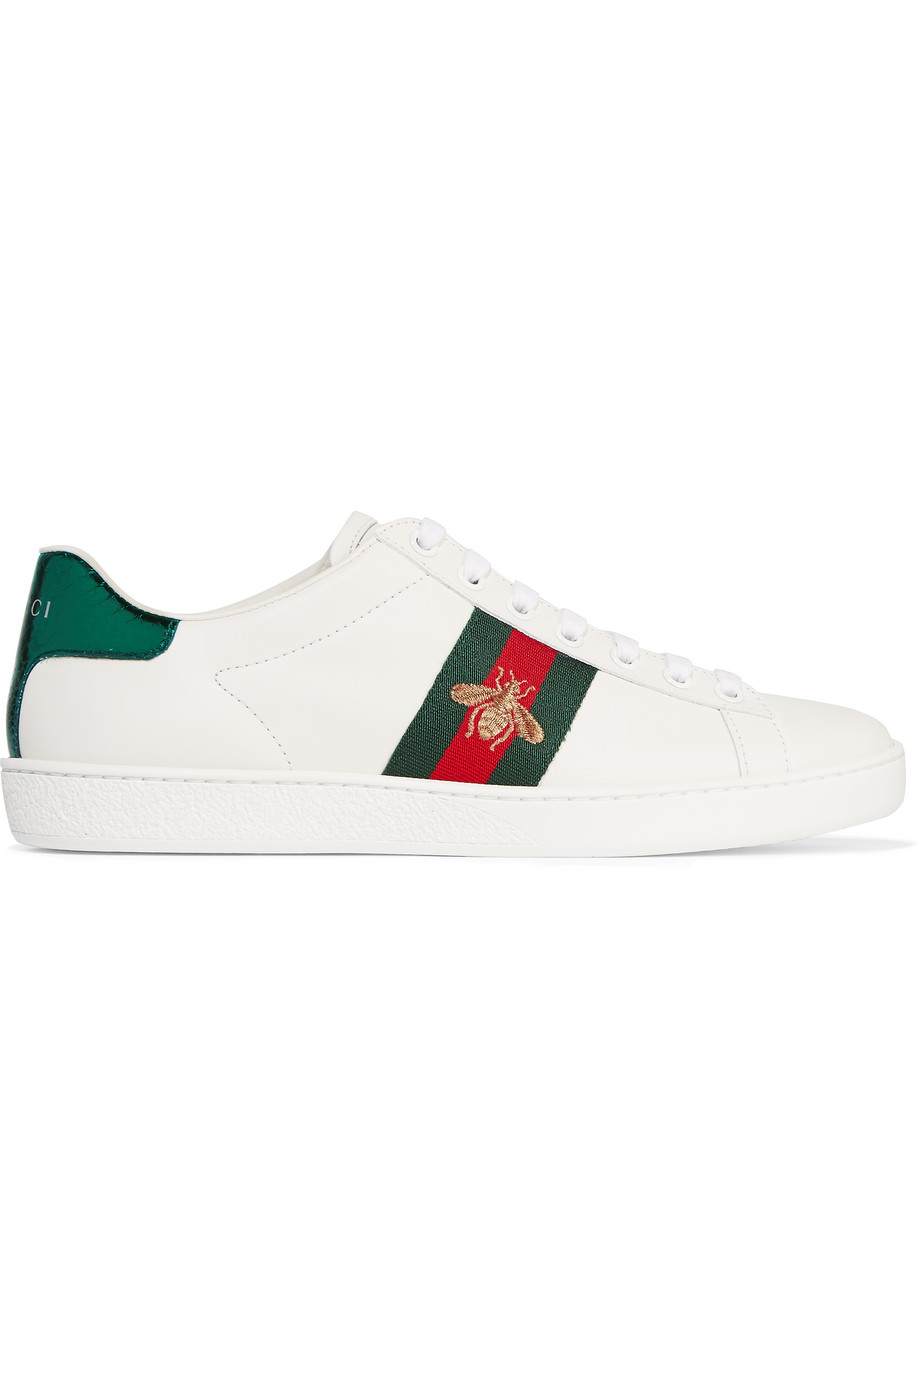 Gucci Watersnake-Trimmed Leather Sneakers, Size: 42